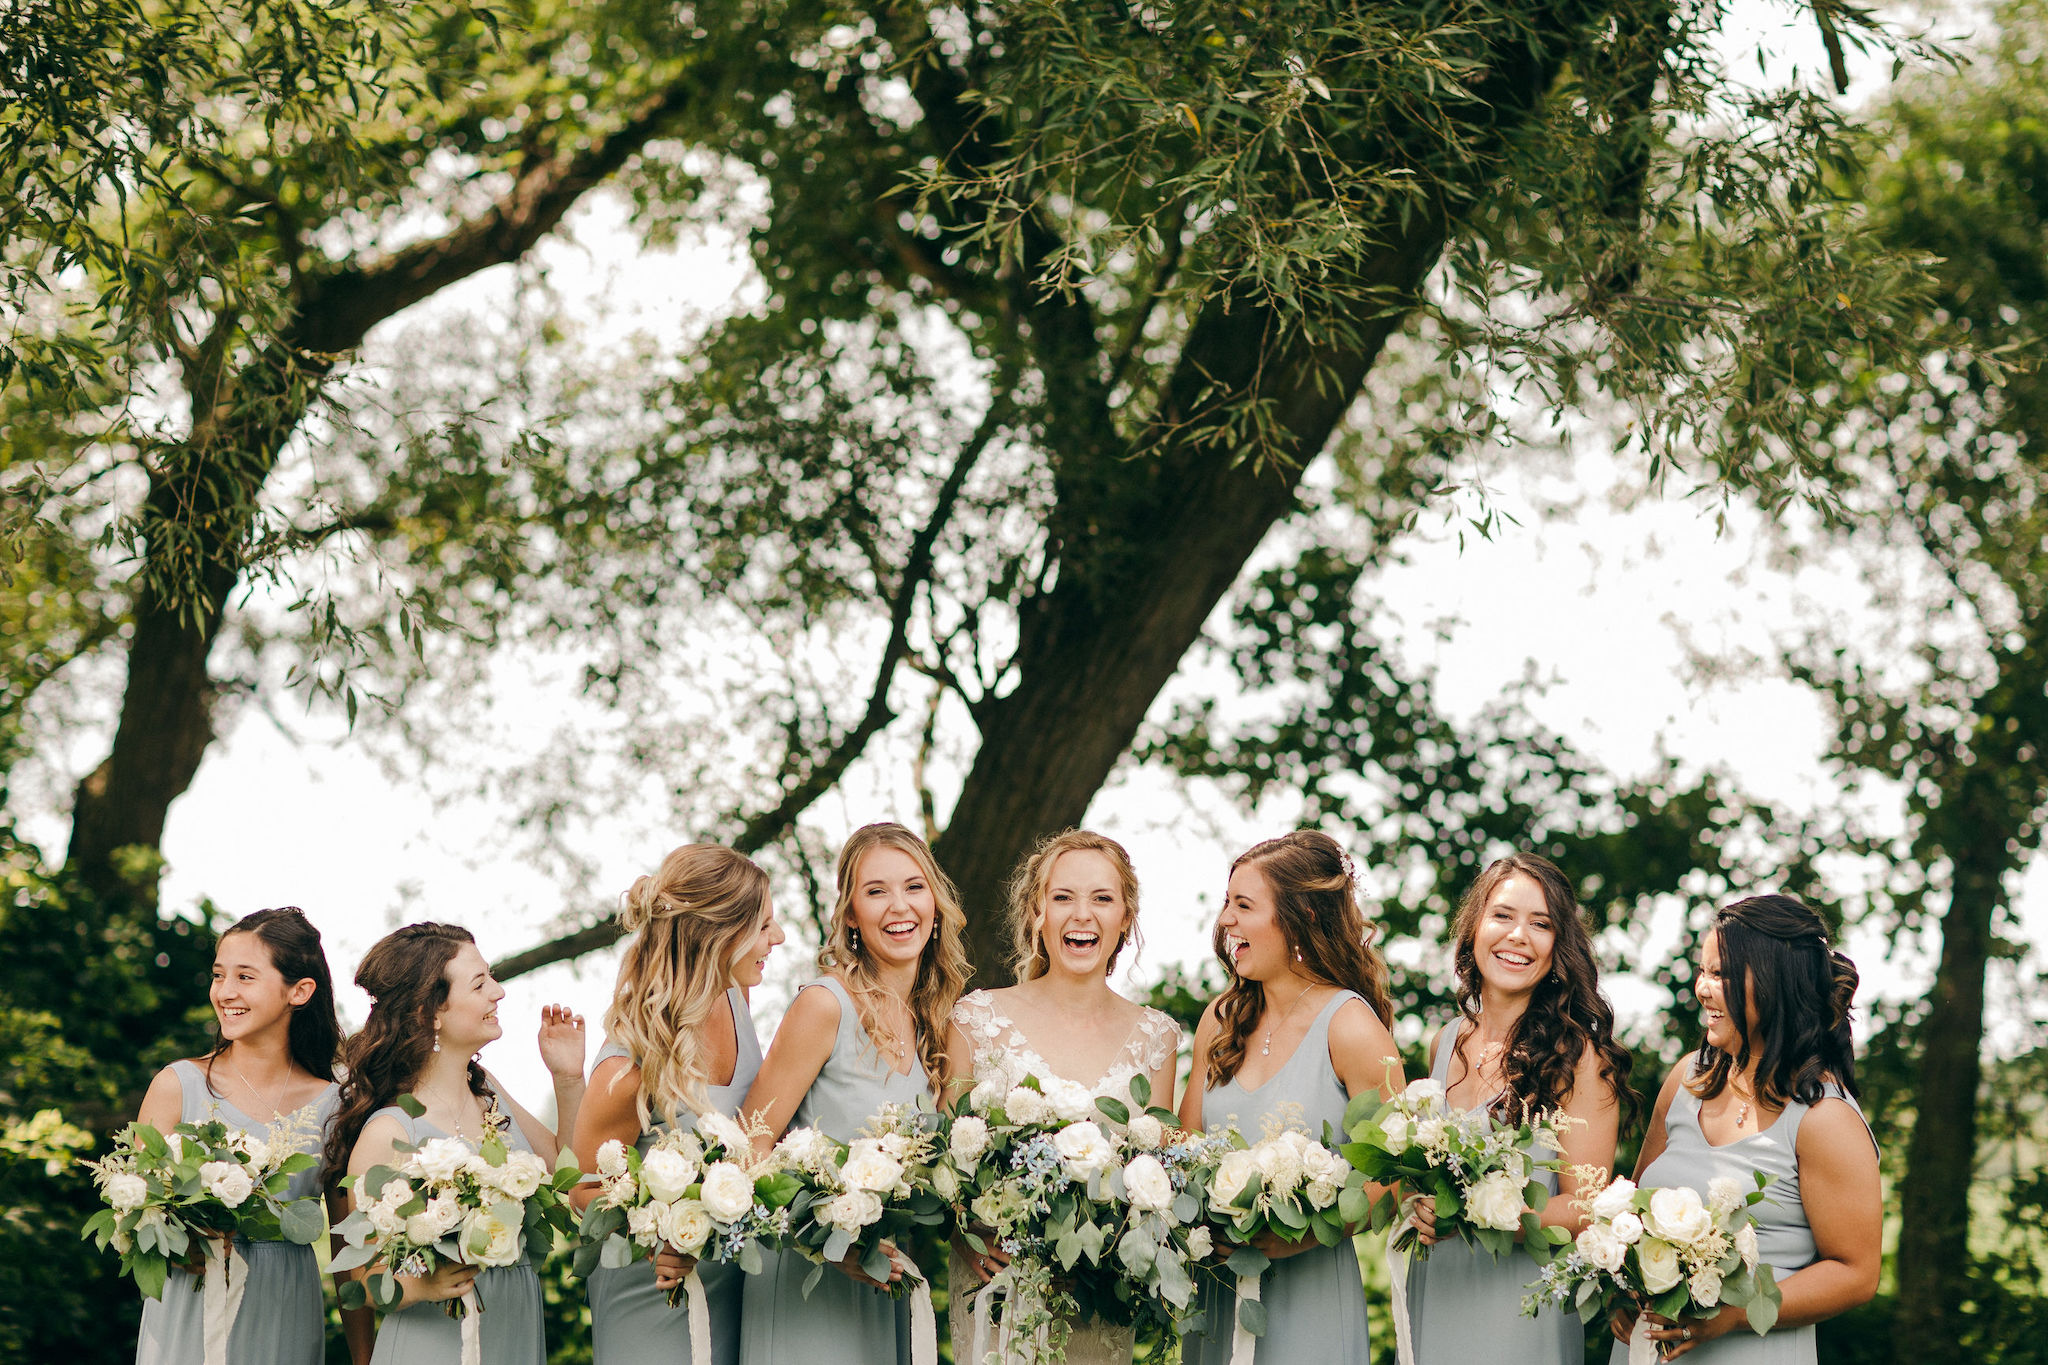 custom wedding planner ann arbor michigan event design florals bridesmaids bouquets outdoor ceremony farm